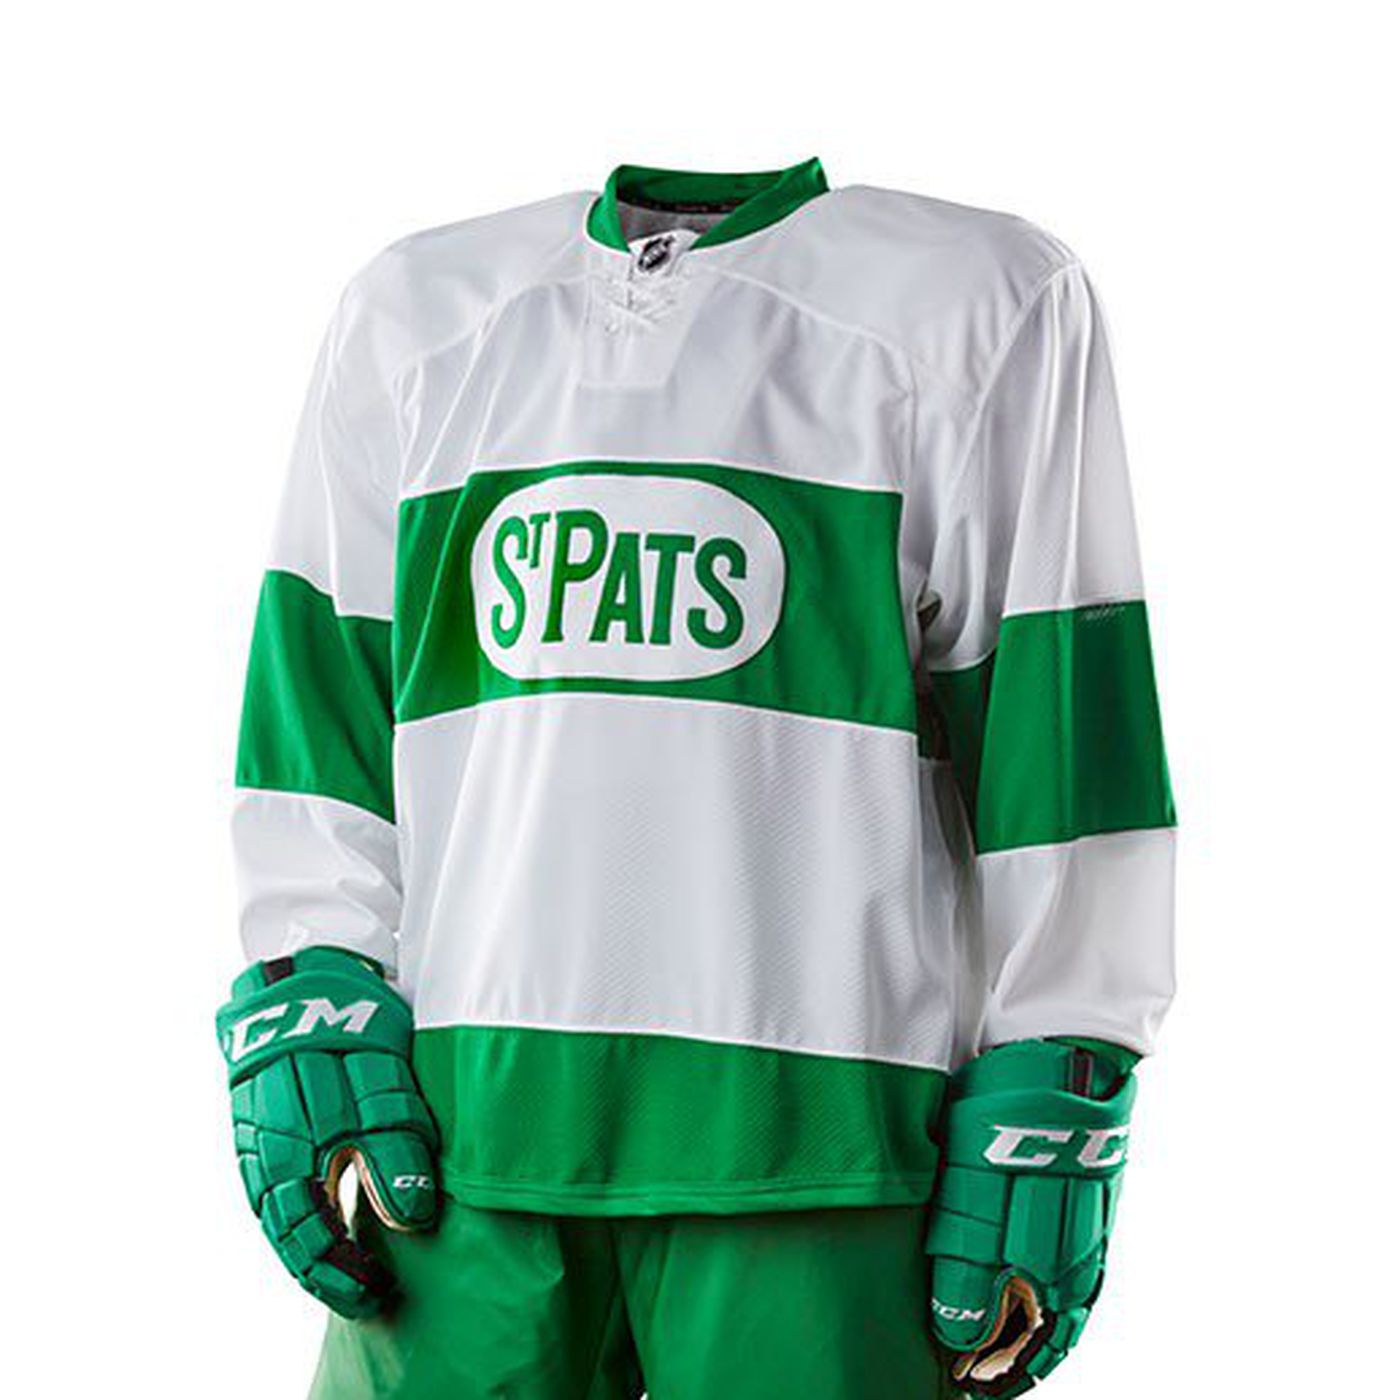 Toronto Maple Leafs have a new St. Pats jersey design - Pension Plan ... 6da1cf238